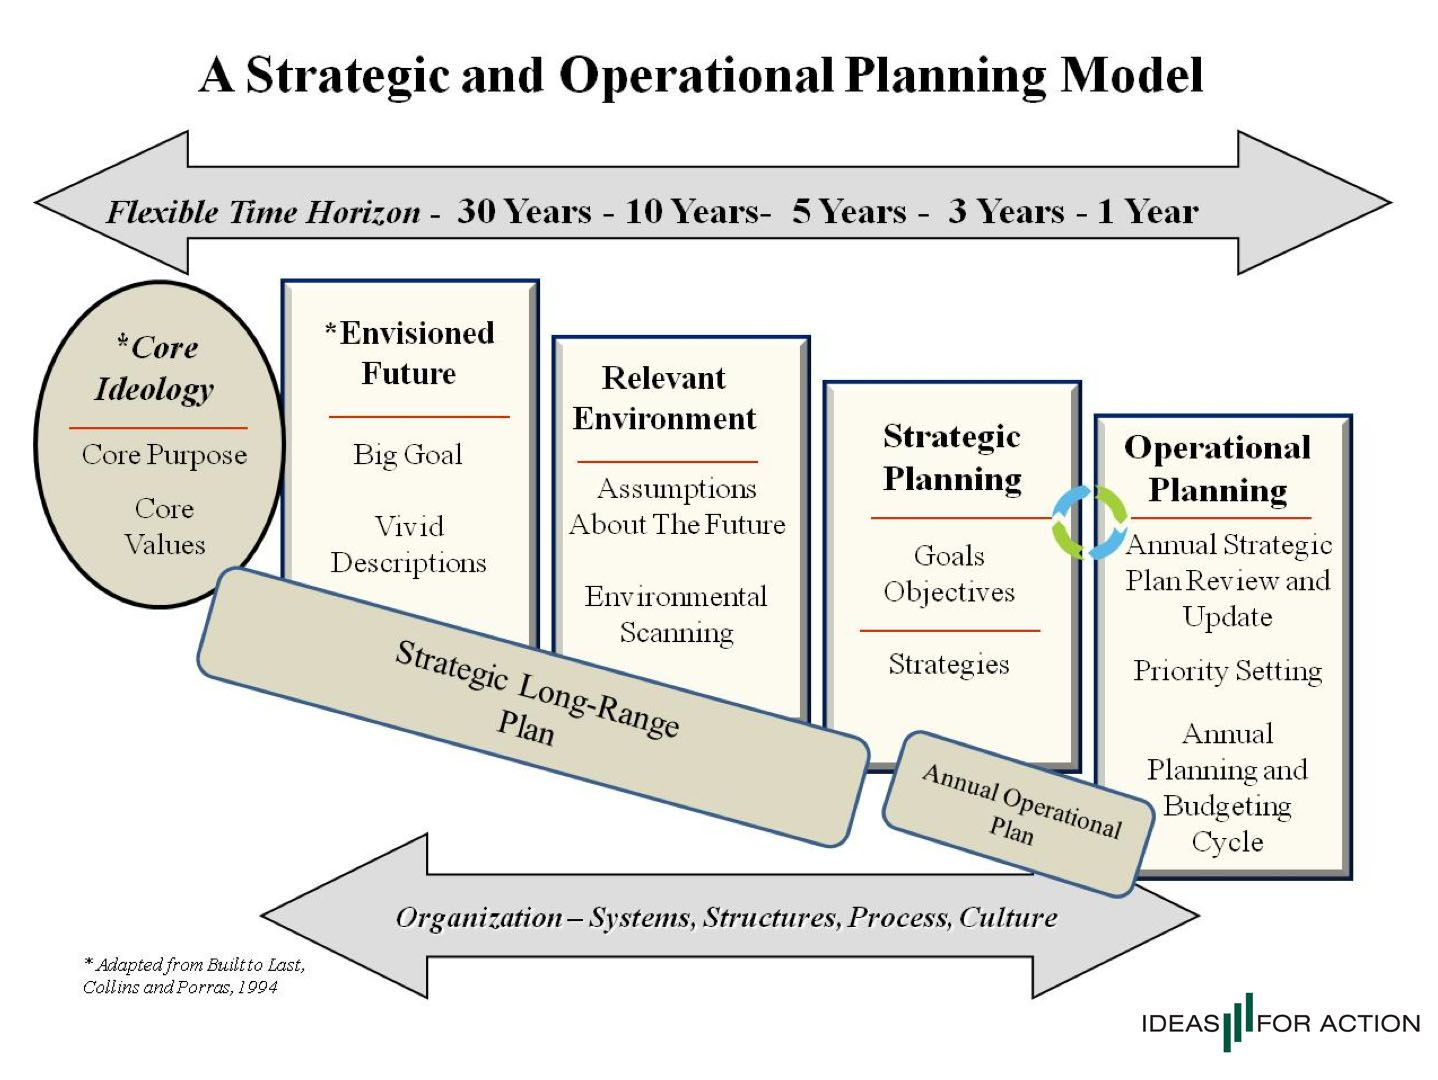 strategic planning models Google Search Marketing